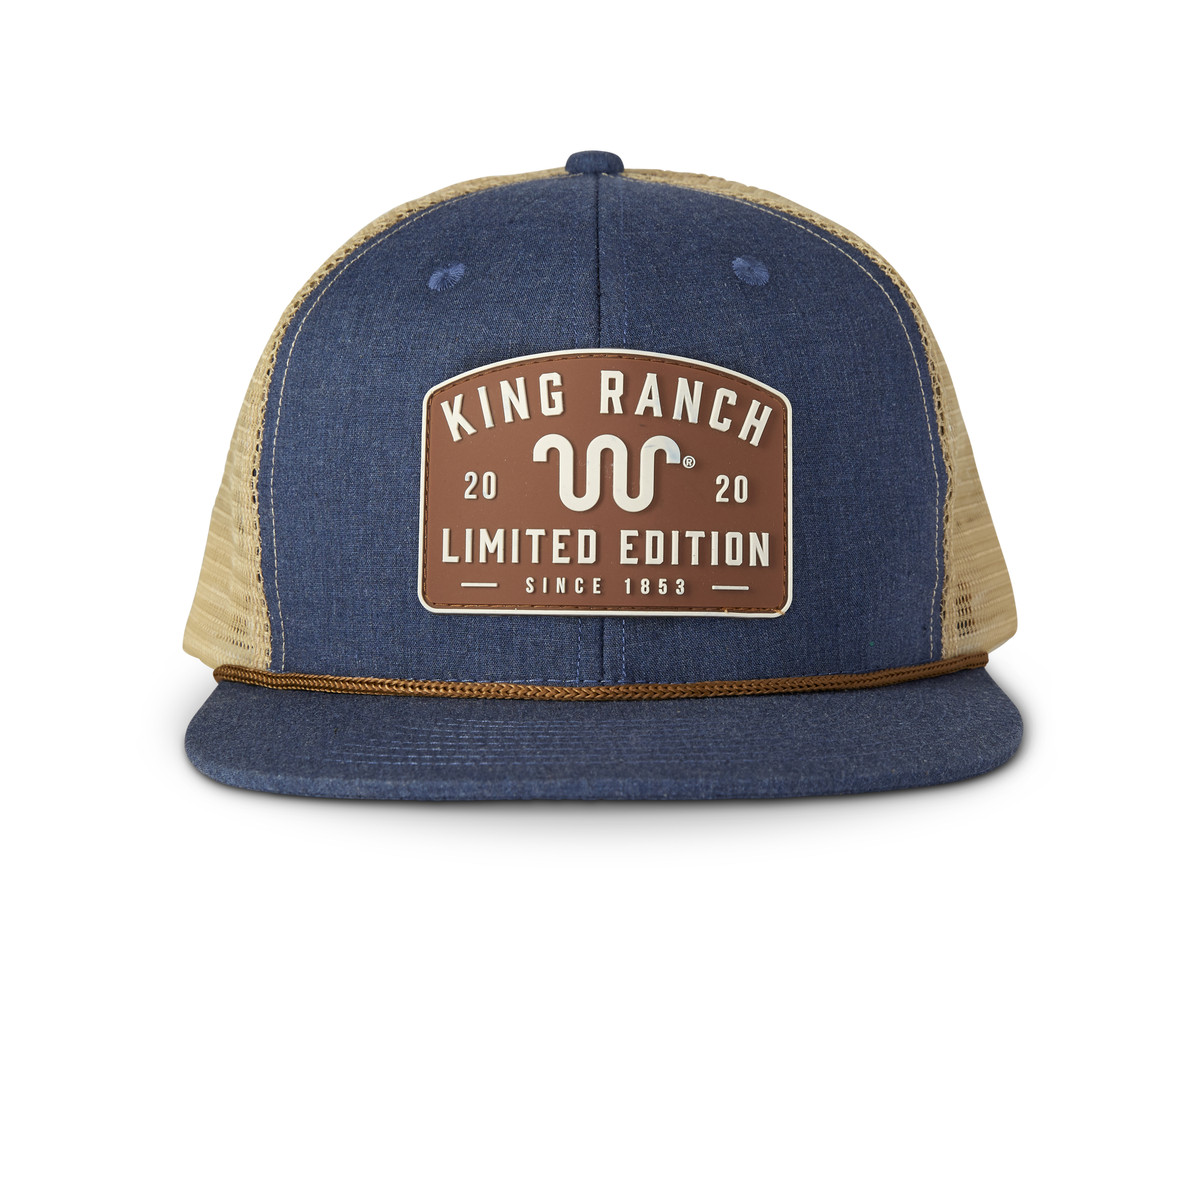 2020 LIMITED EDITION CAP